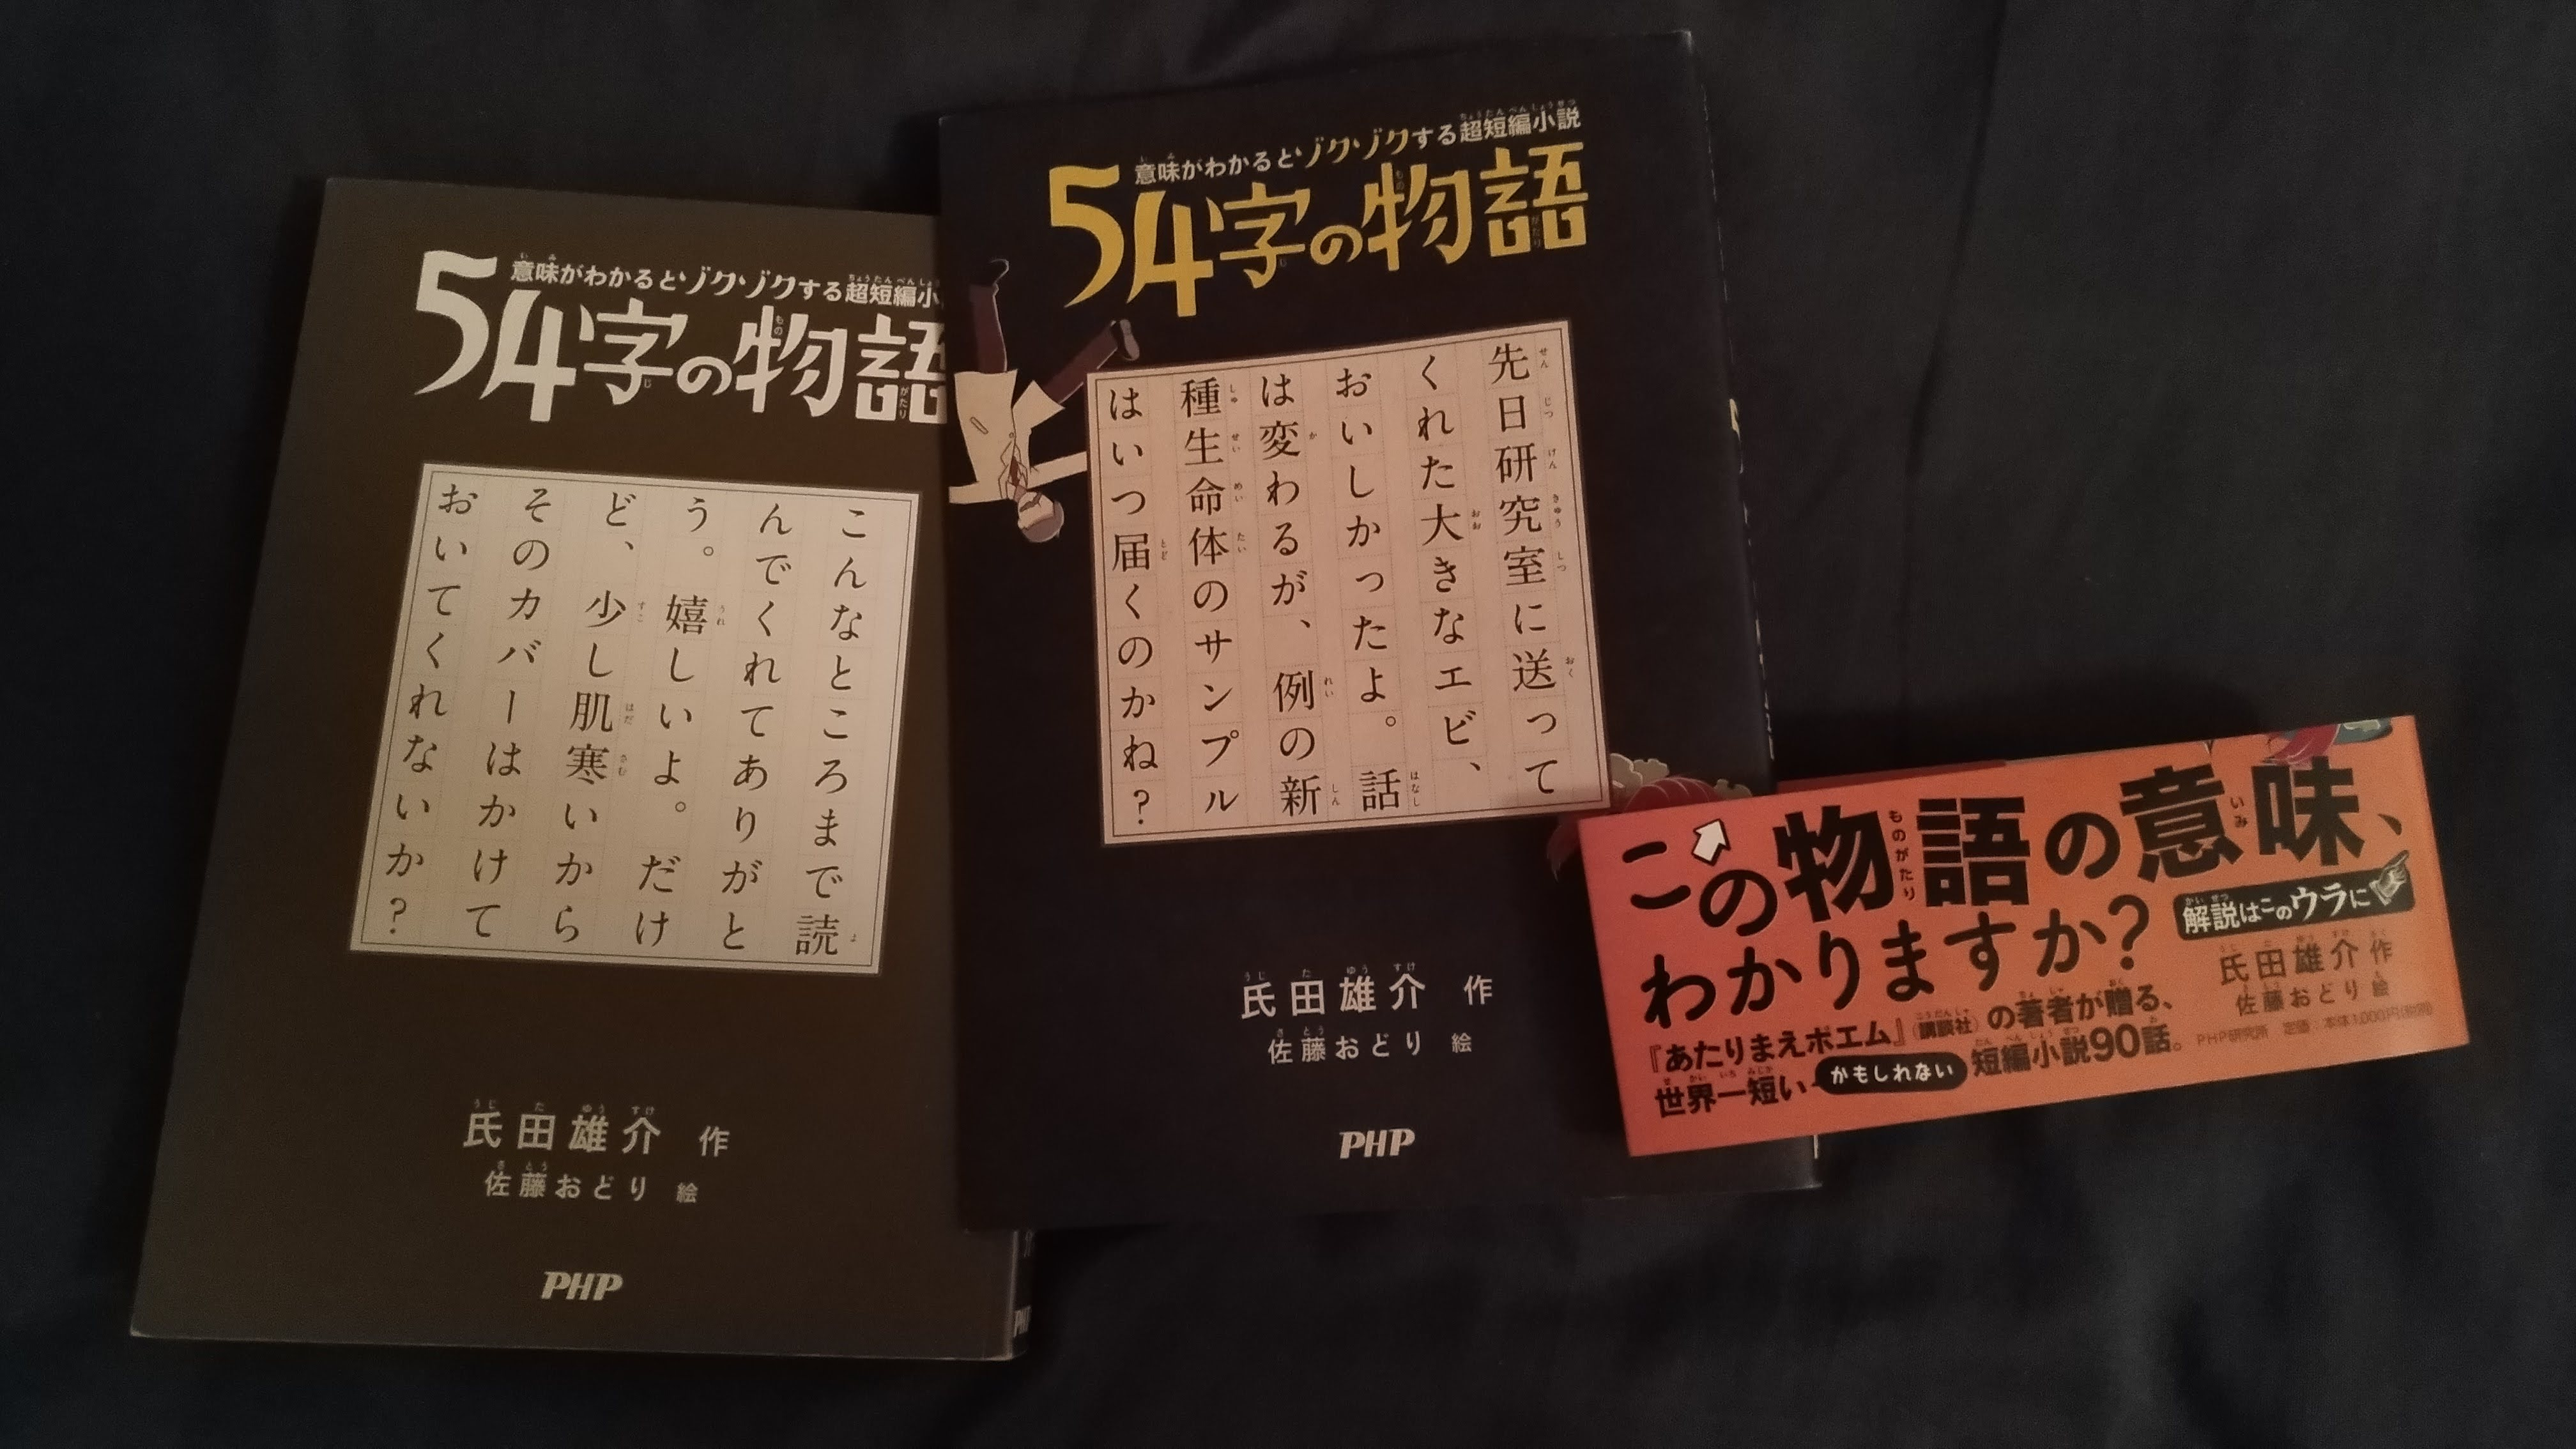 Belly-band and dust cover next to the gray cover showing a short story: こんなところまで読んでくれてありがとう。嬉しいよ。だけど、少し肌寒いからそのカバーはかけておいてくれないか?